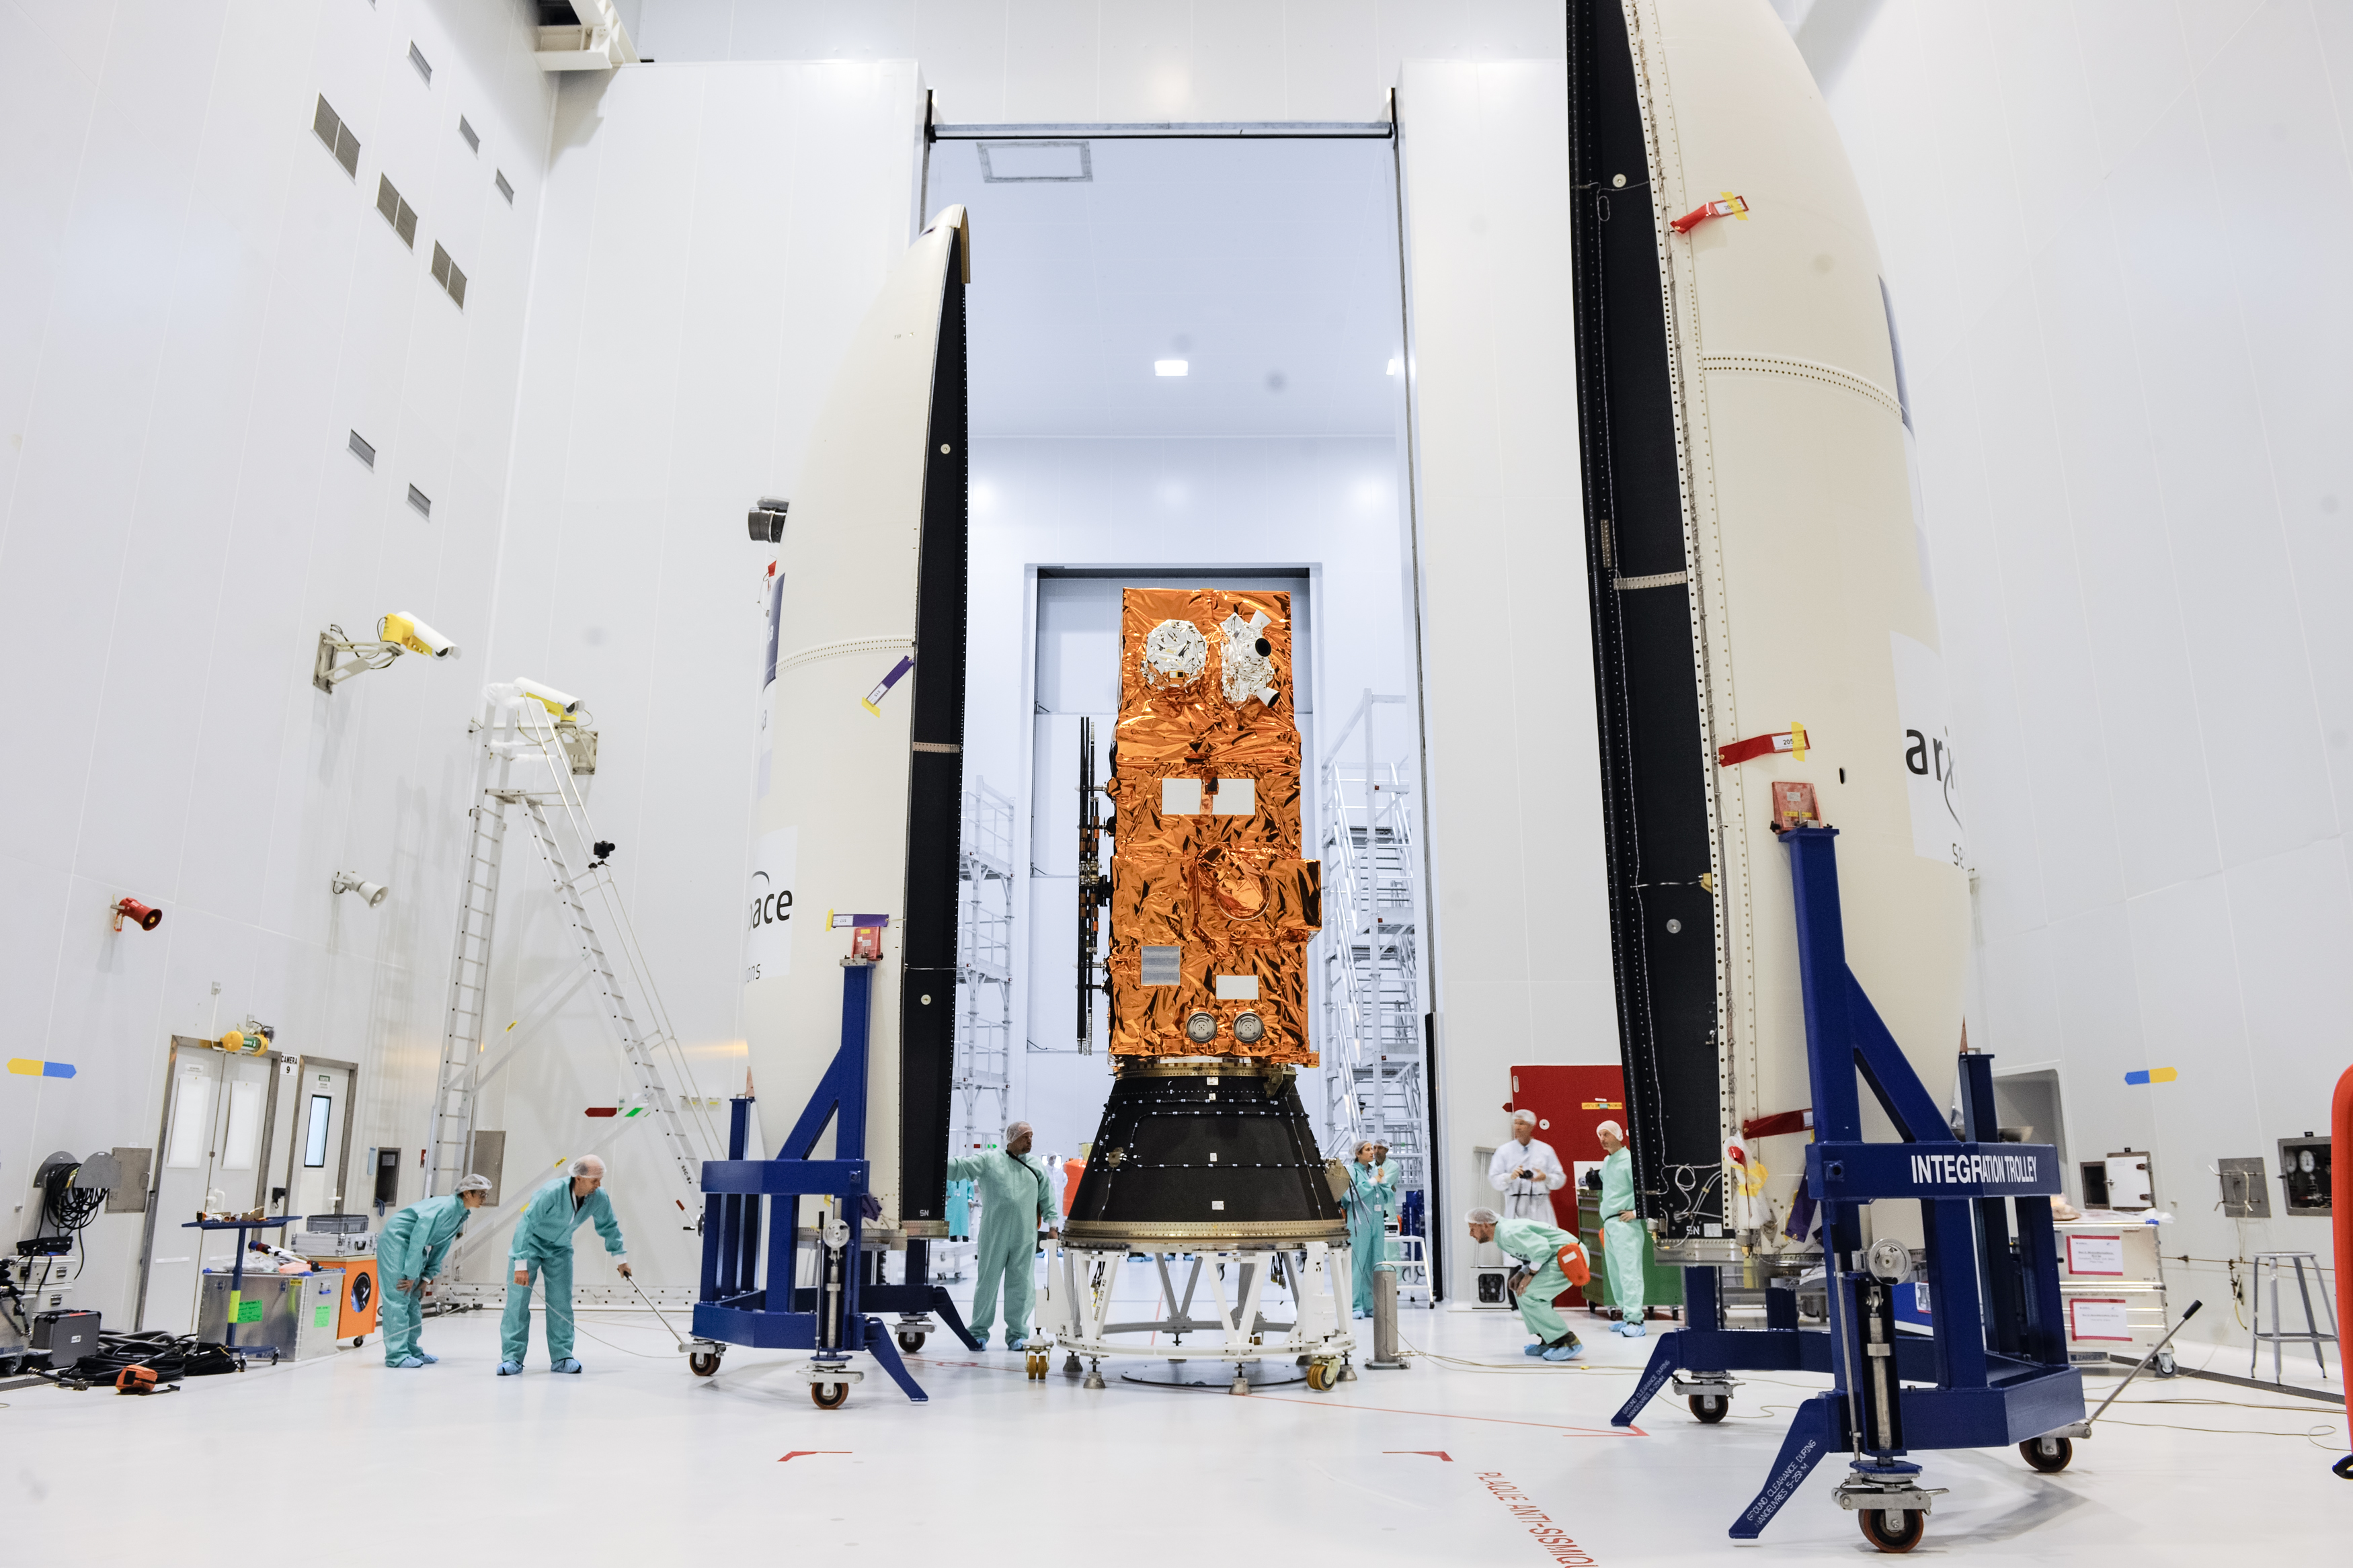 Sentinel-2A satellite being prepared for launch in a laboratory hanger by people in protective overalls and head coverings.